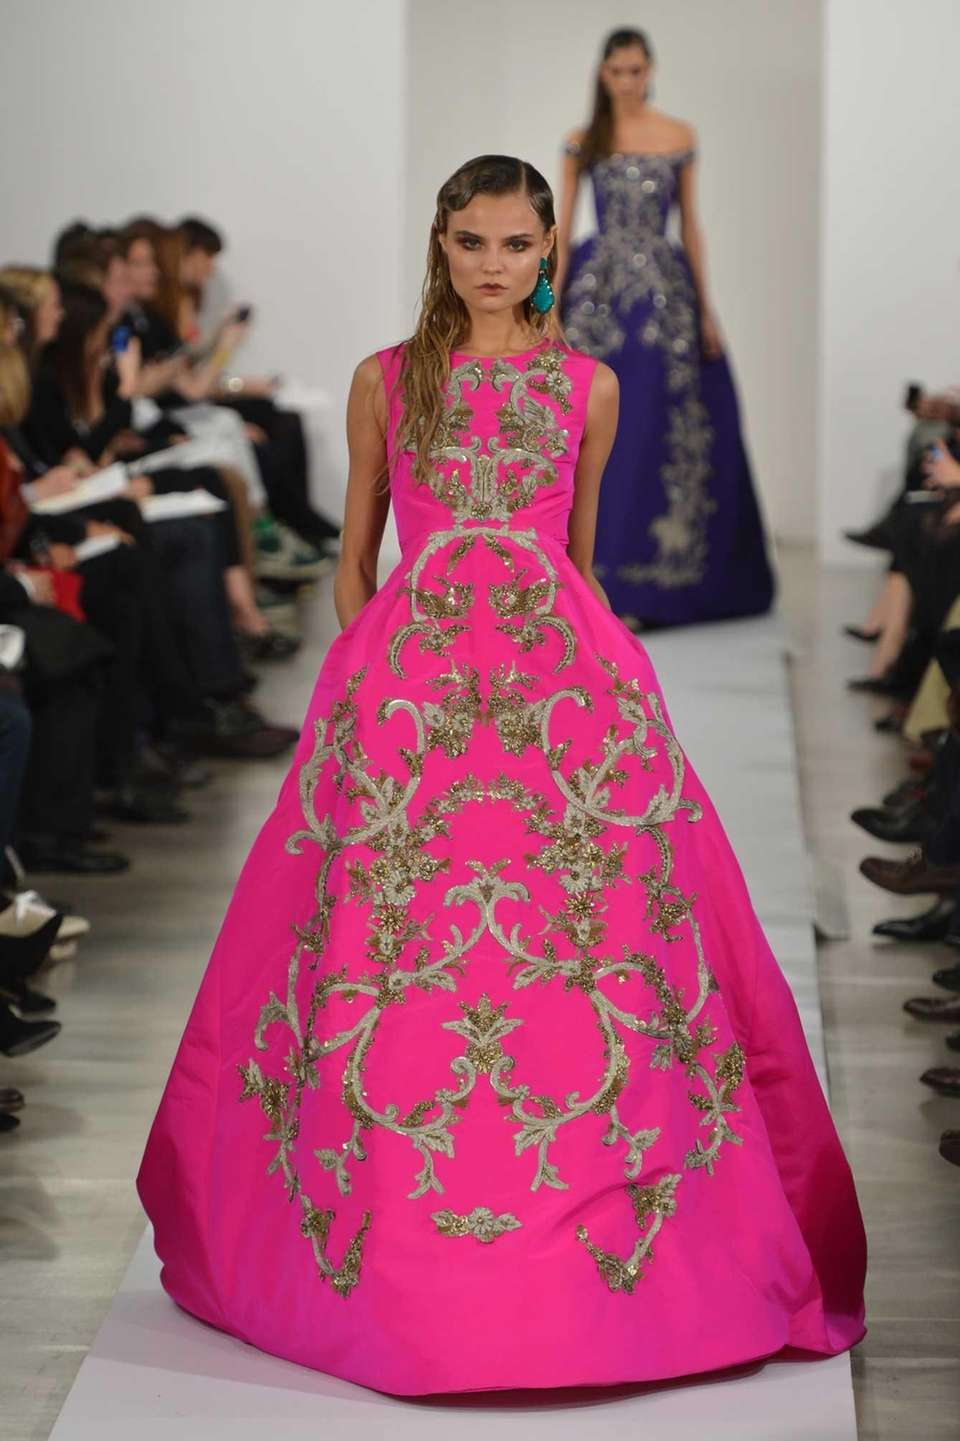 At Oscar de la Renta's Fall 2013 show,